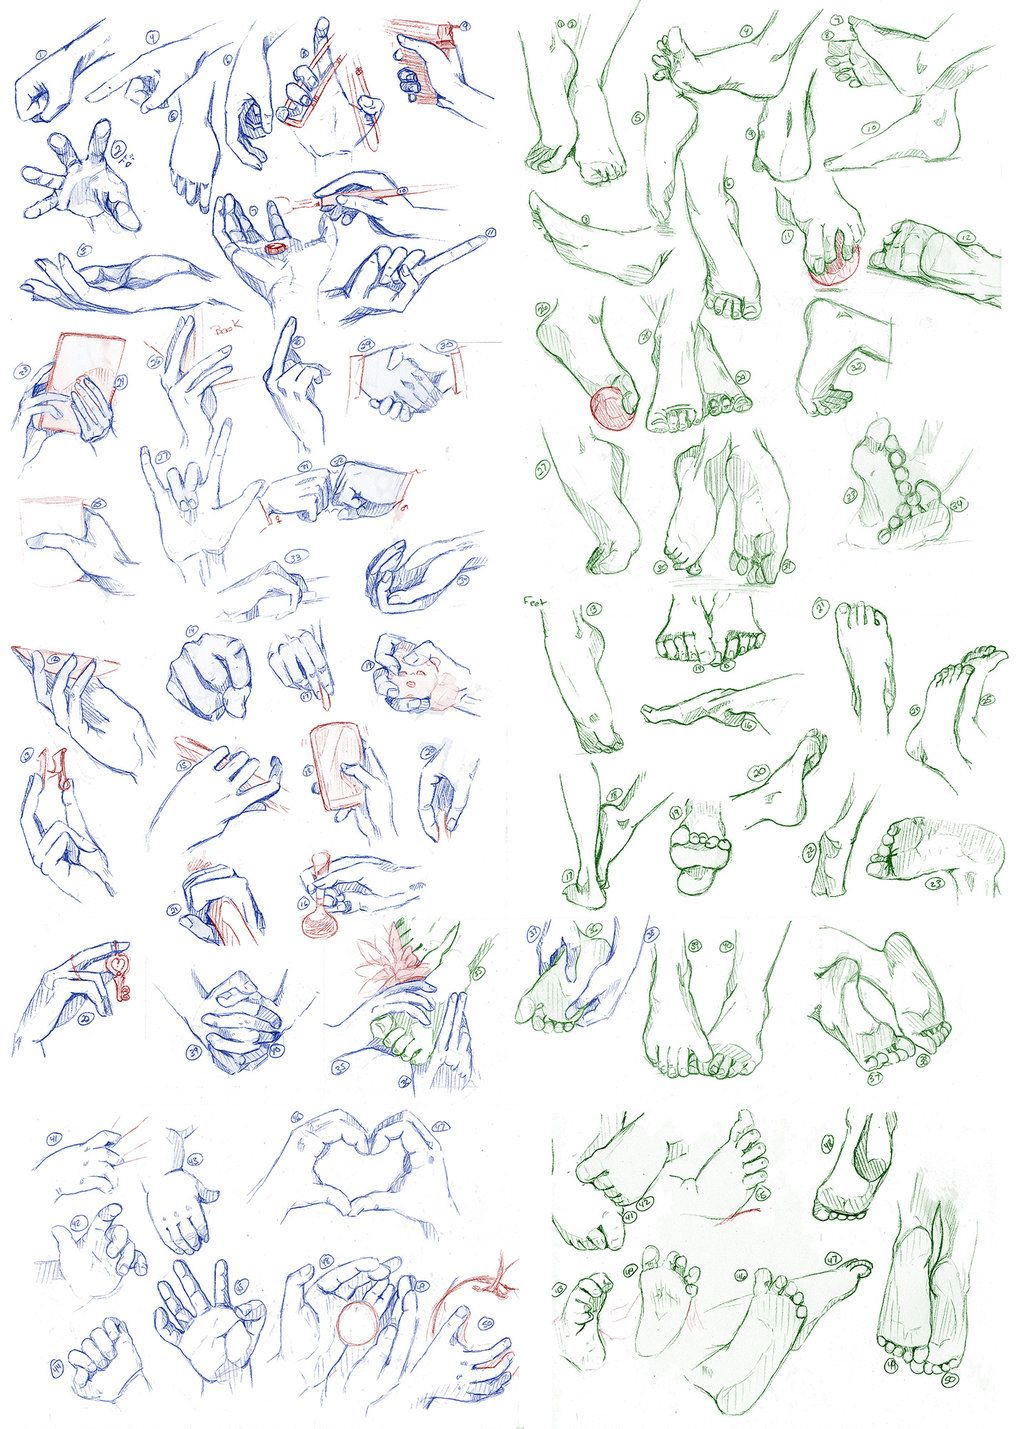 Hands And Feet, 100 Of Them By Syosenpai